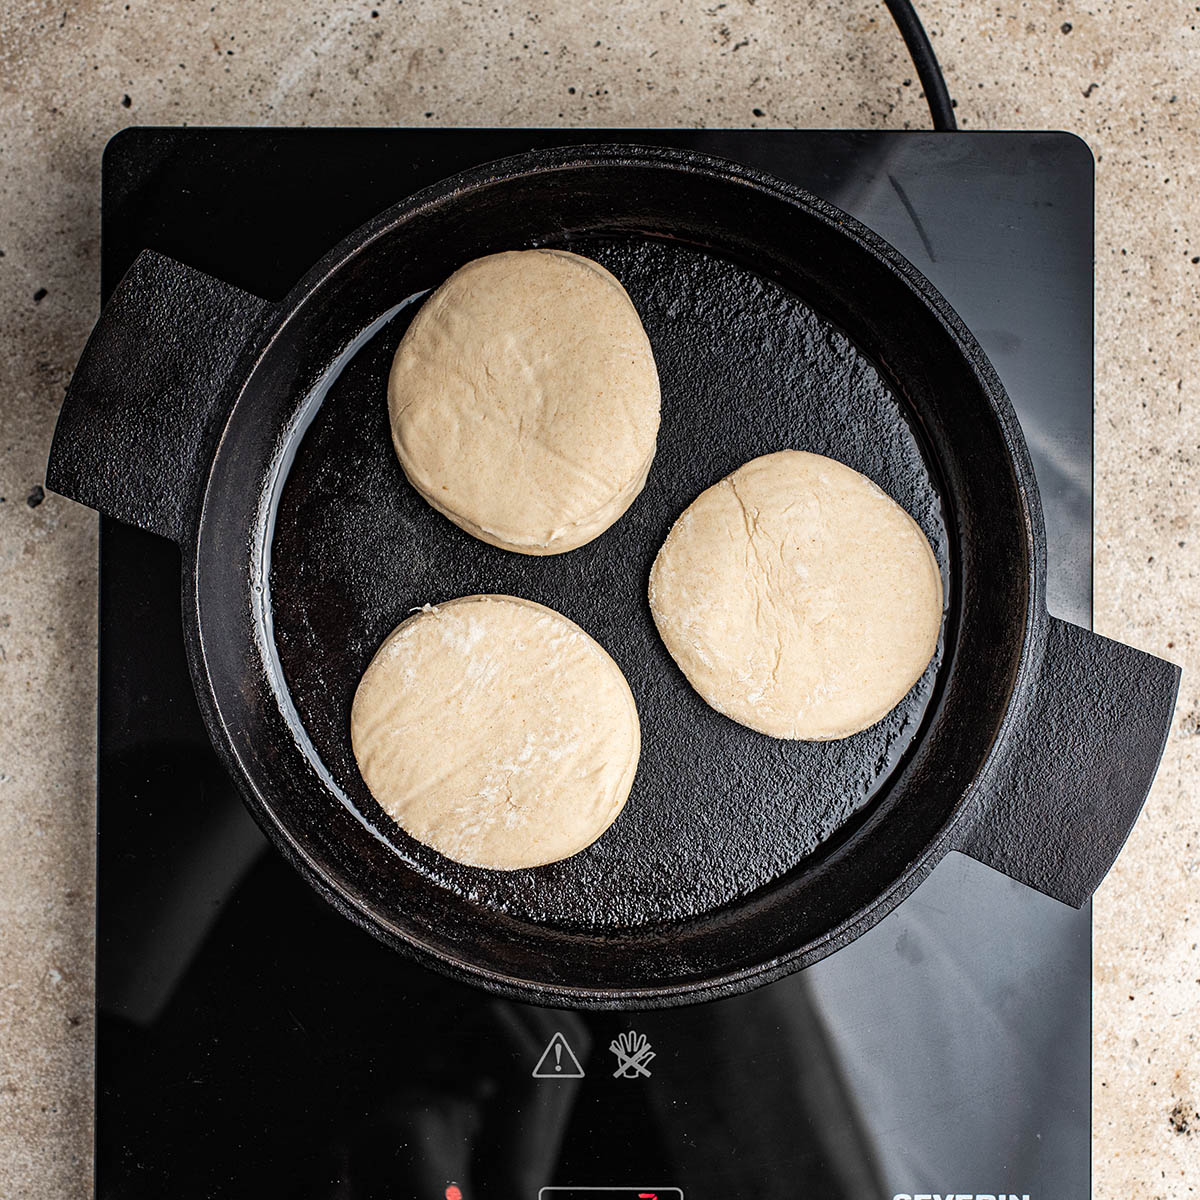 Frying the English muffins in a cast iron pan.